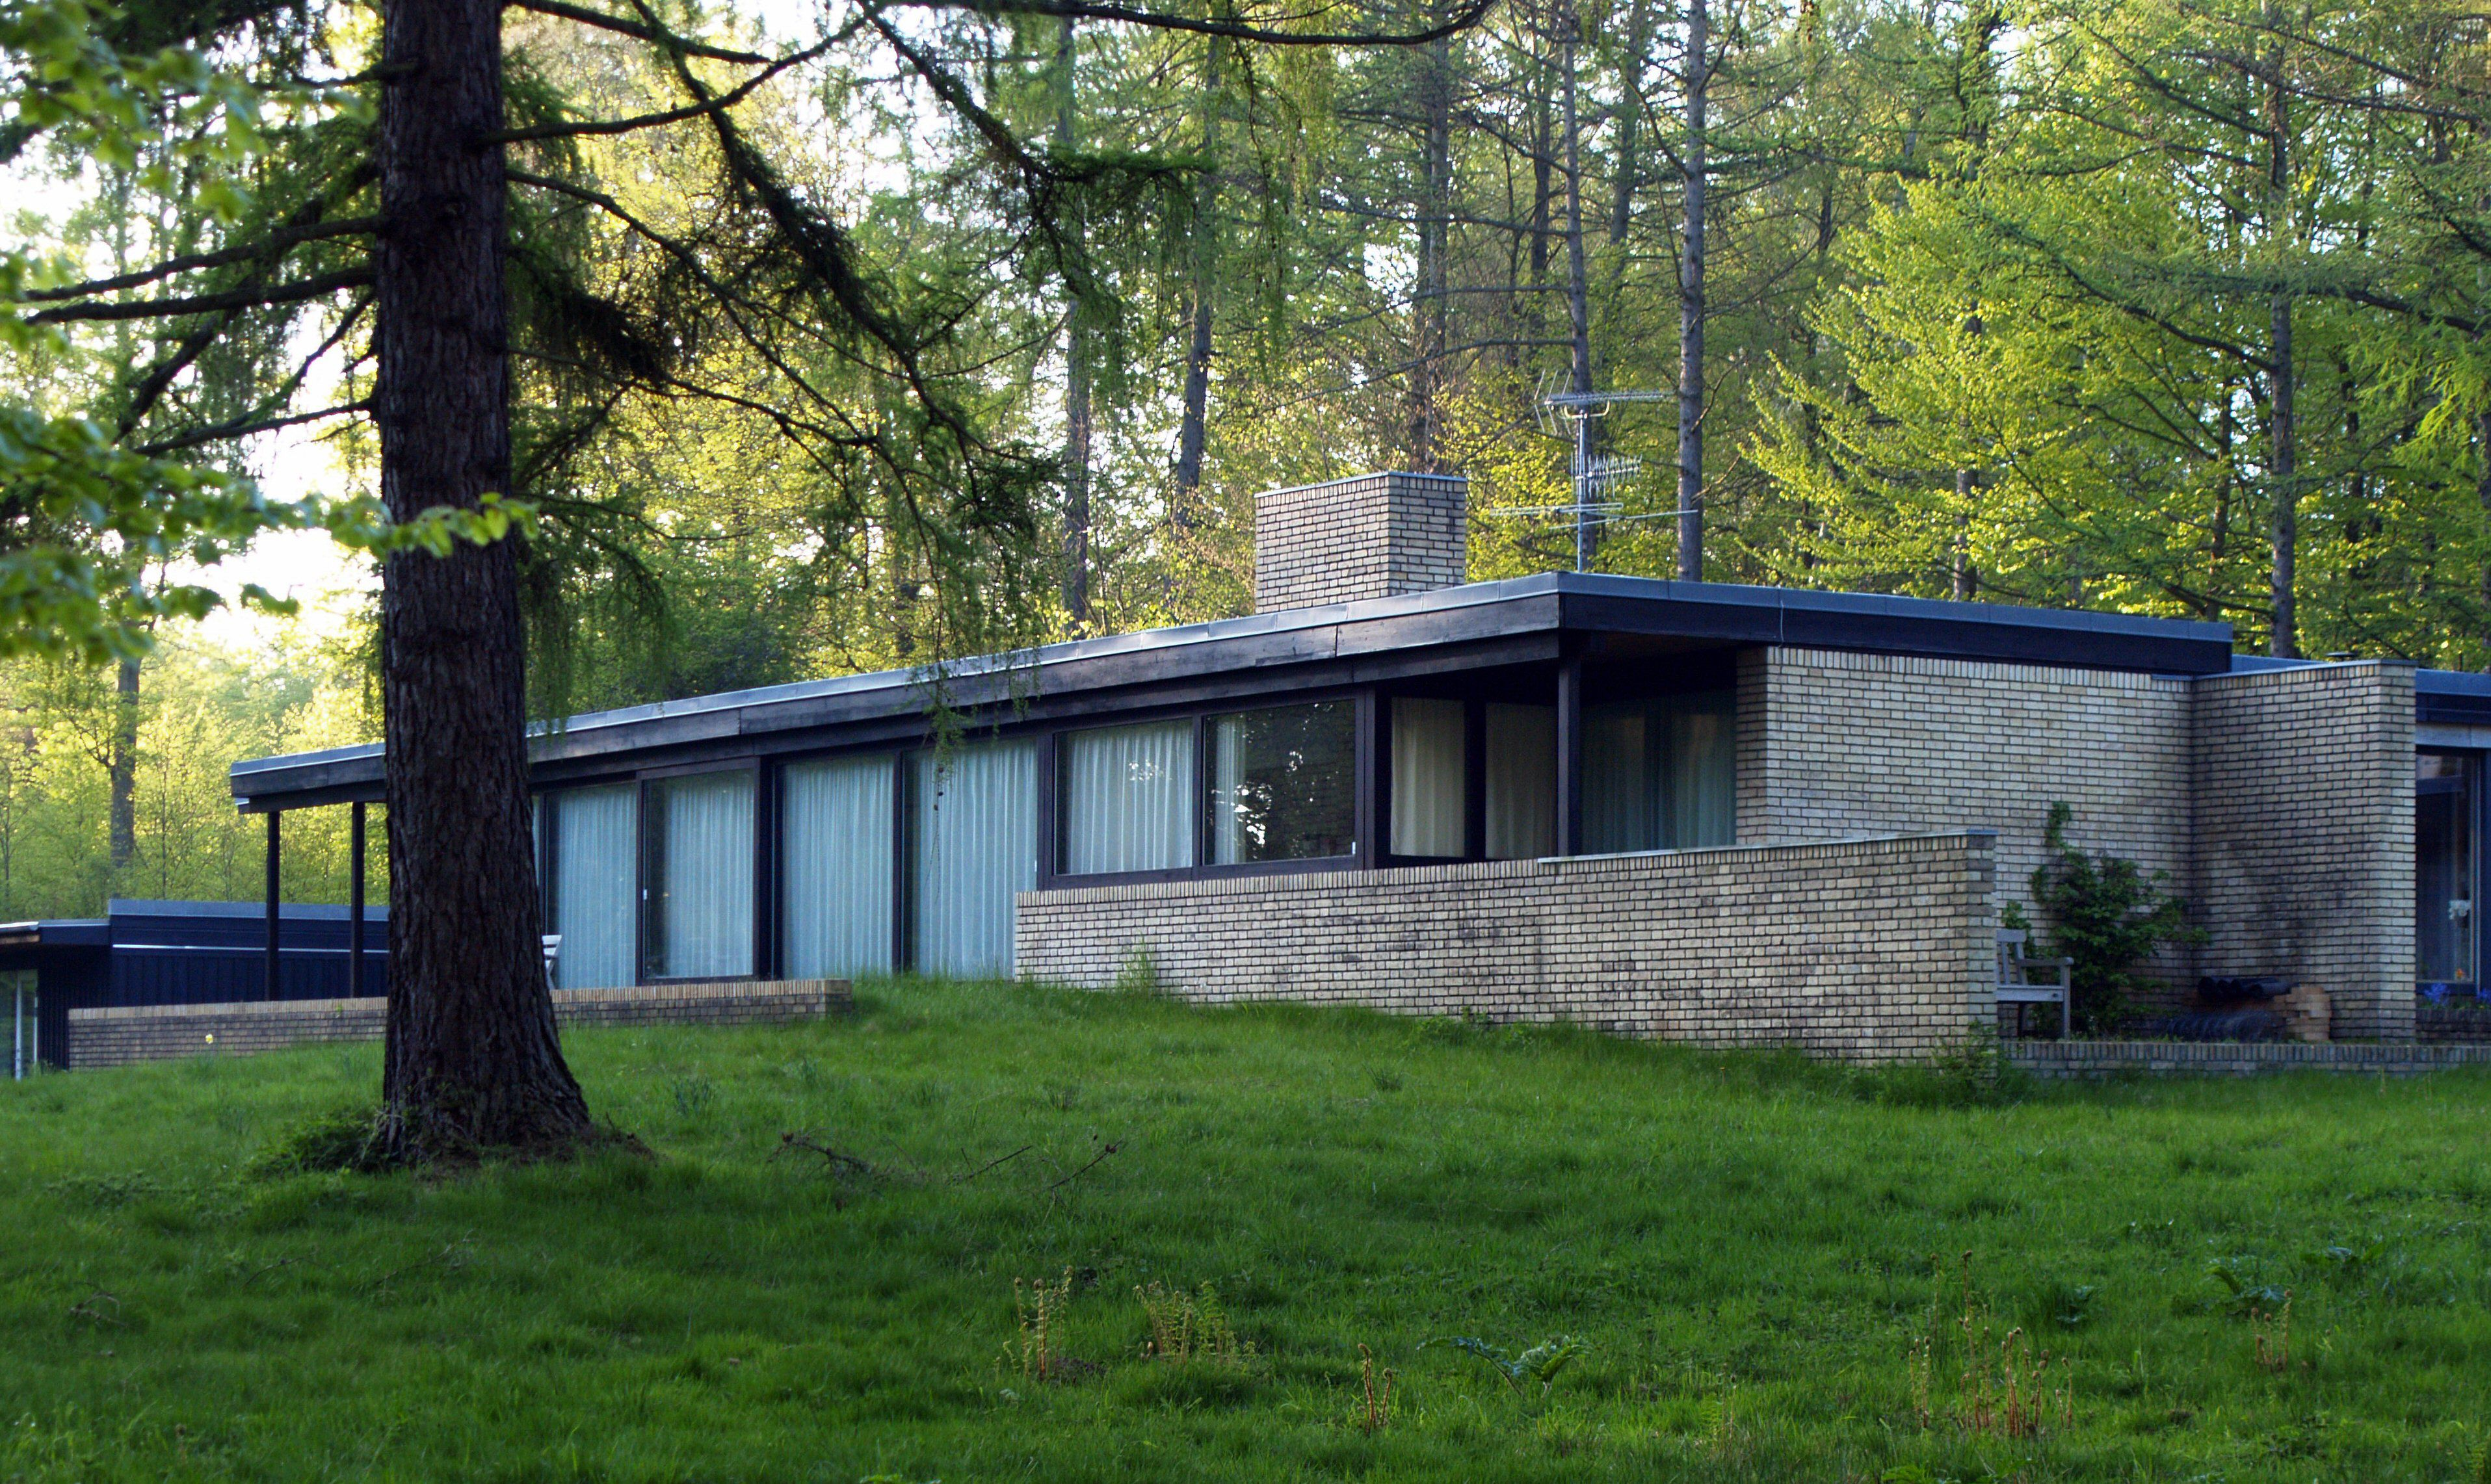 ranch-type house, large center chimney, glass walls, stone walls